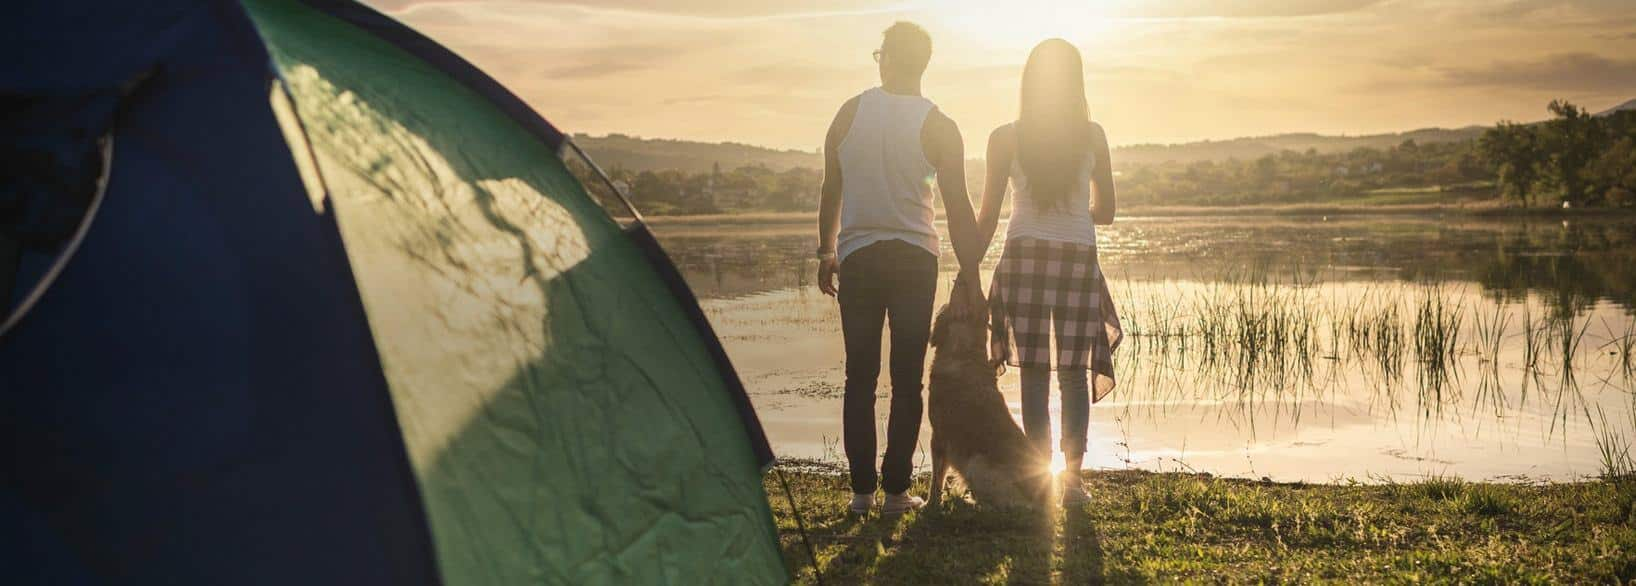 summer banner image for our homepage - couple and their dog with a tent watching the sunrise